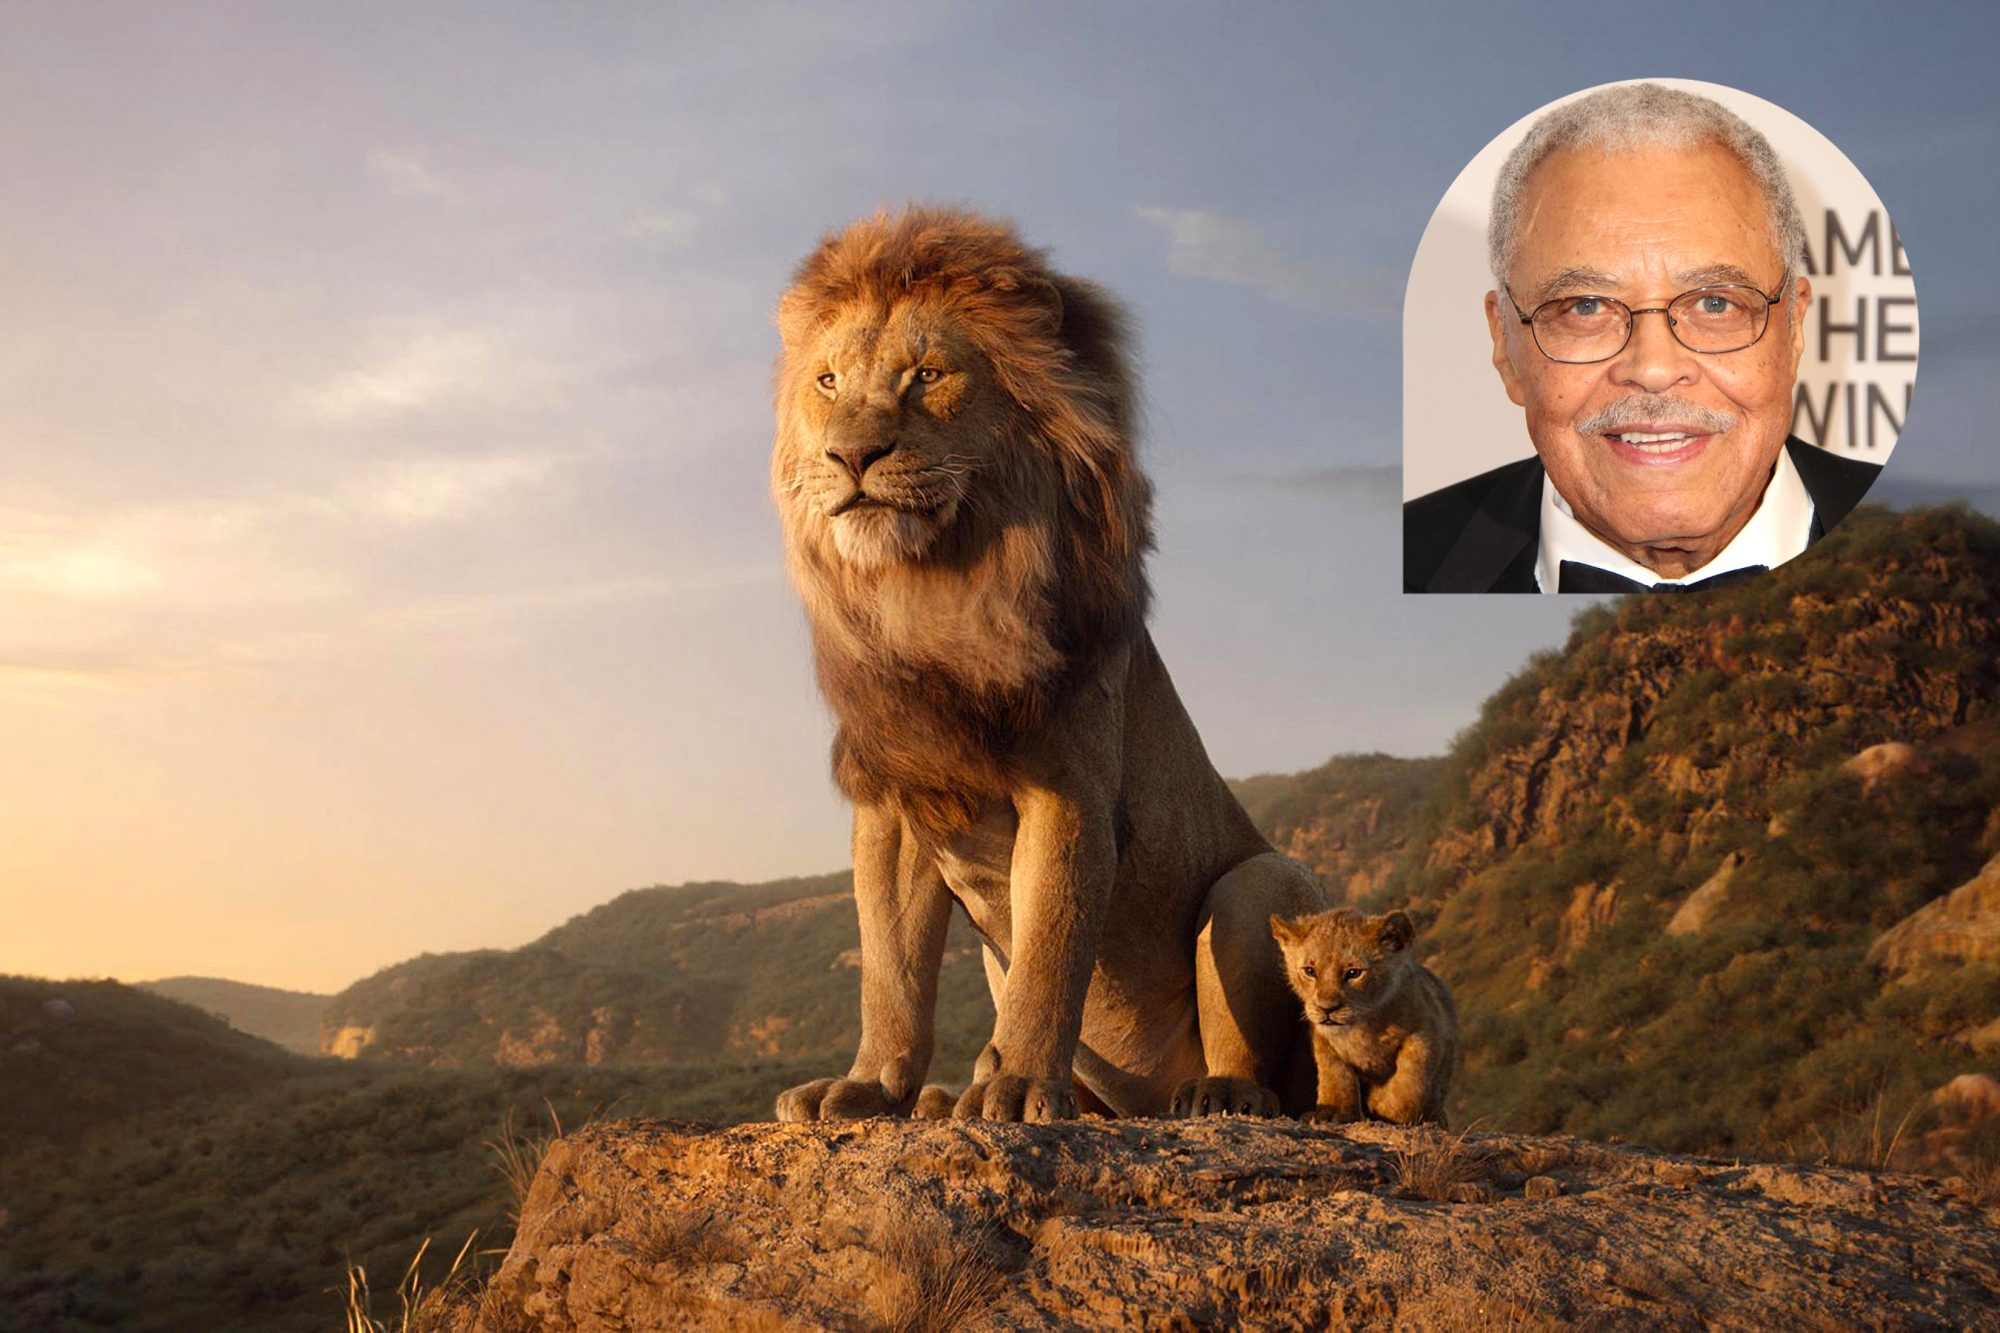 THE LION KING James Earl Jones